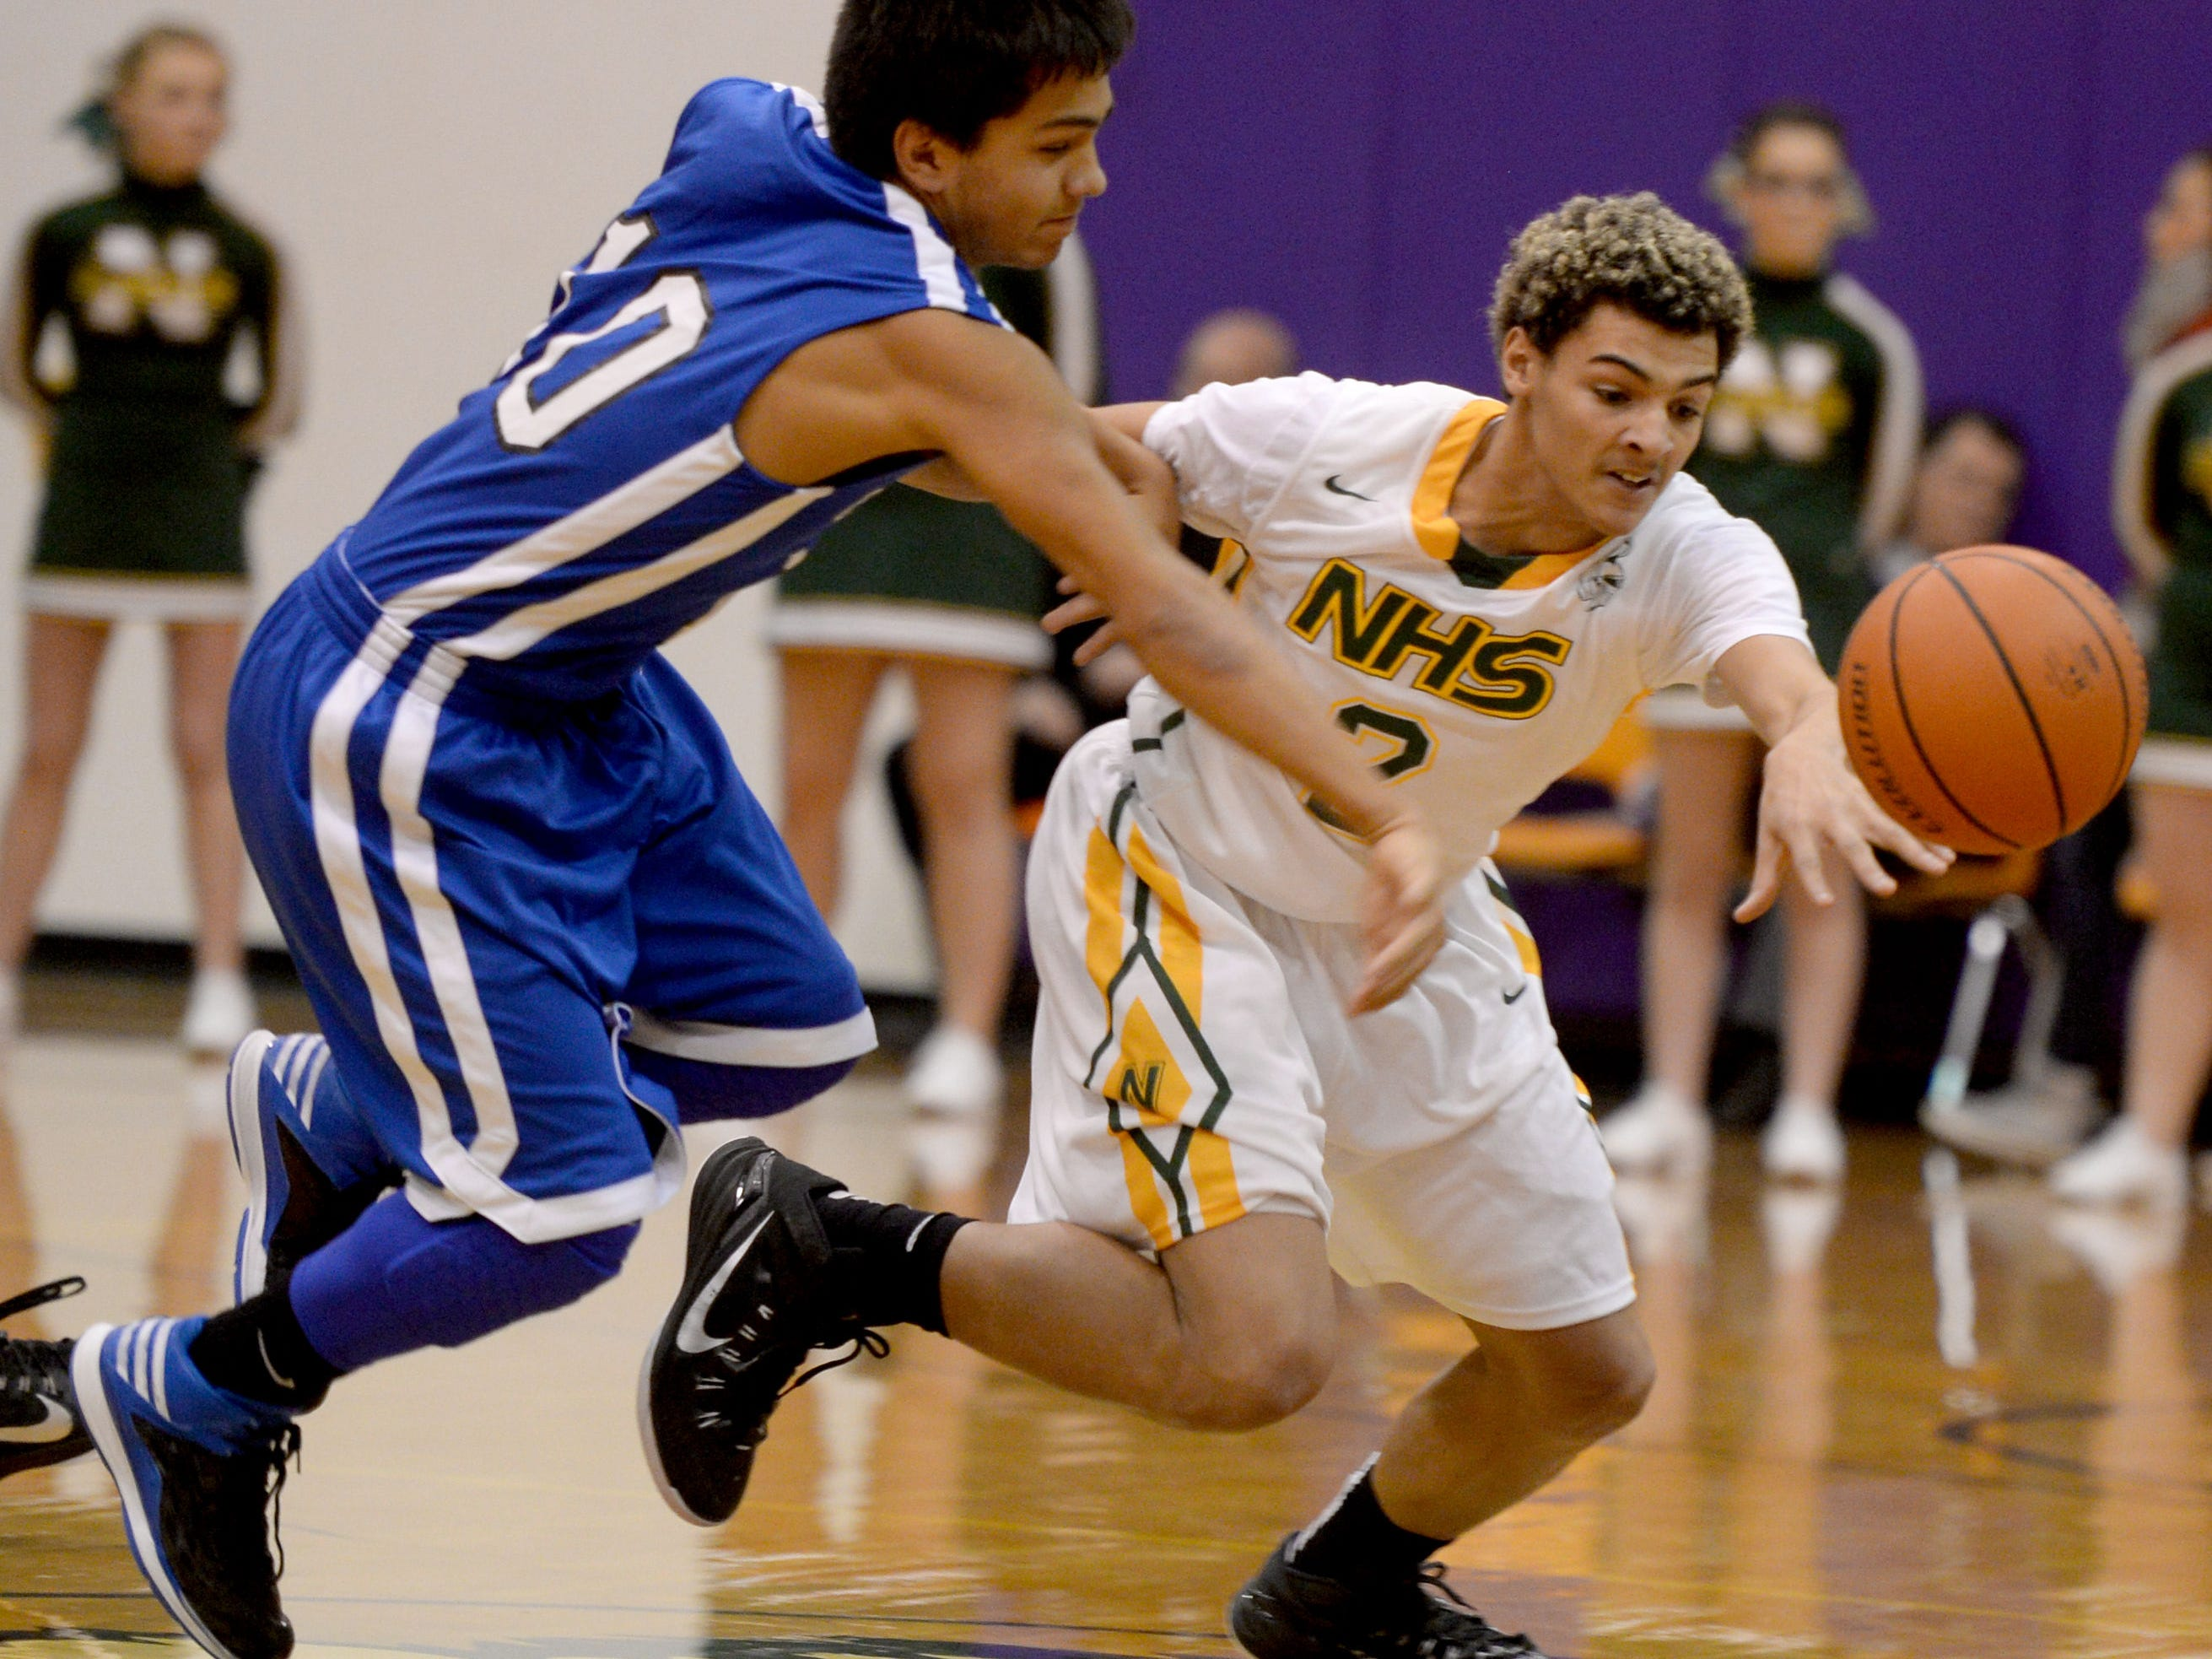 Northeastern's Tyler Smith knocks the ball loose from Centerville's Ricky Torres during the boys basketball championship game of the Wayne County Tournament in Hagerstown Monday.